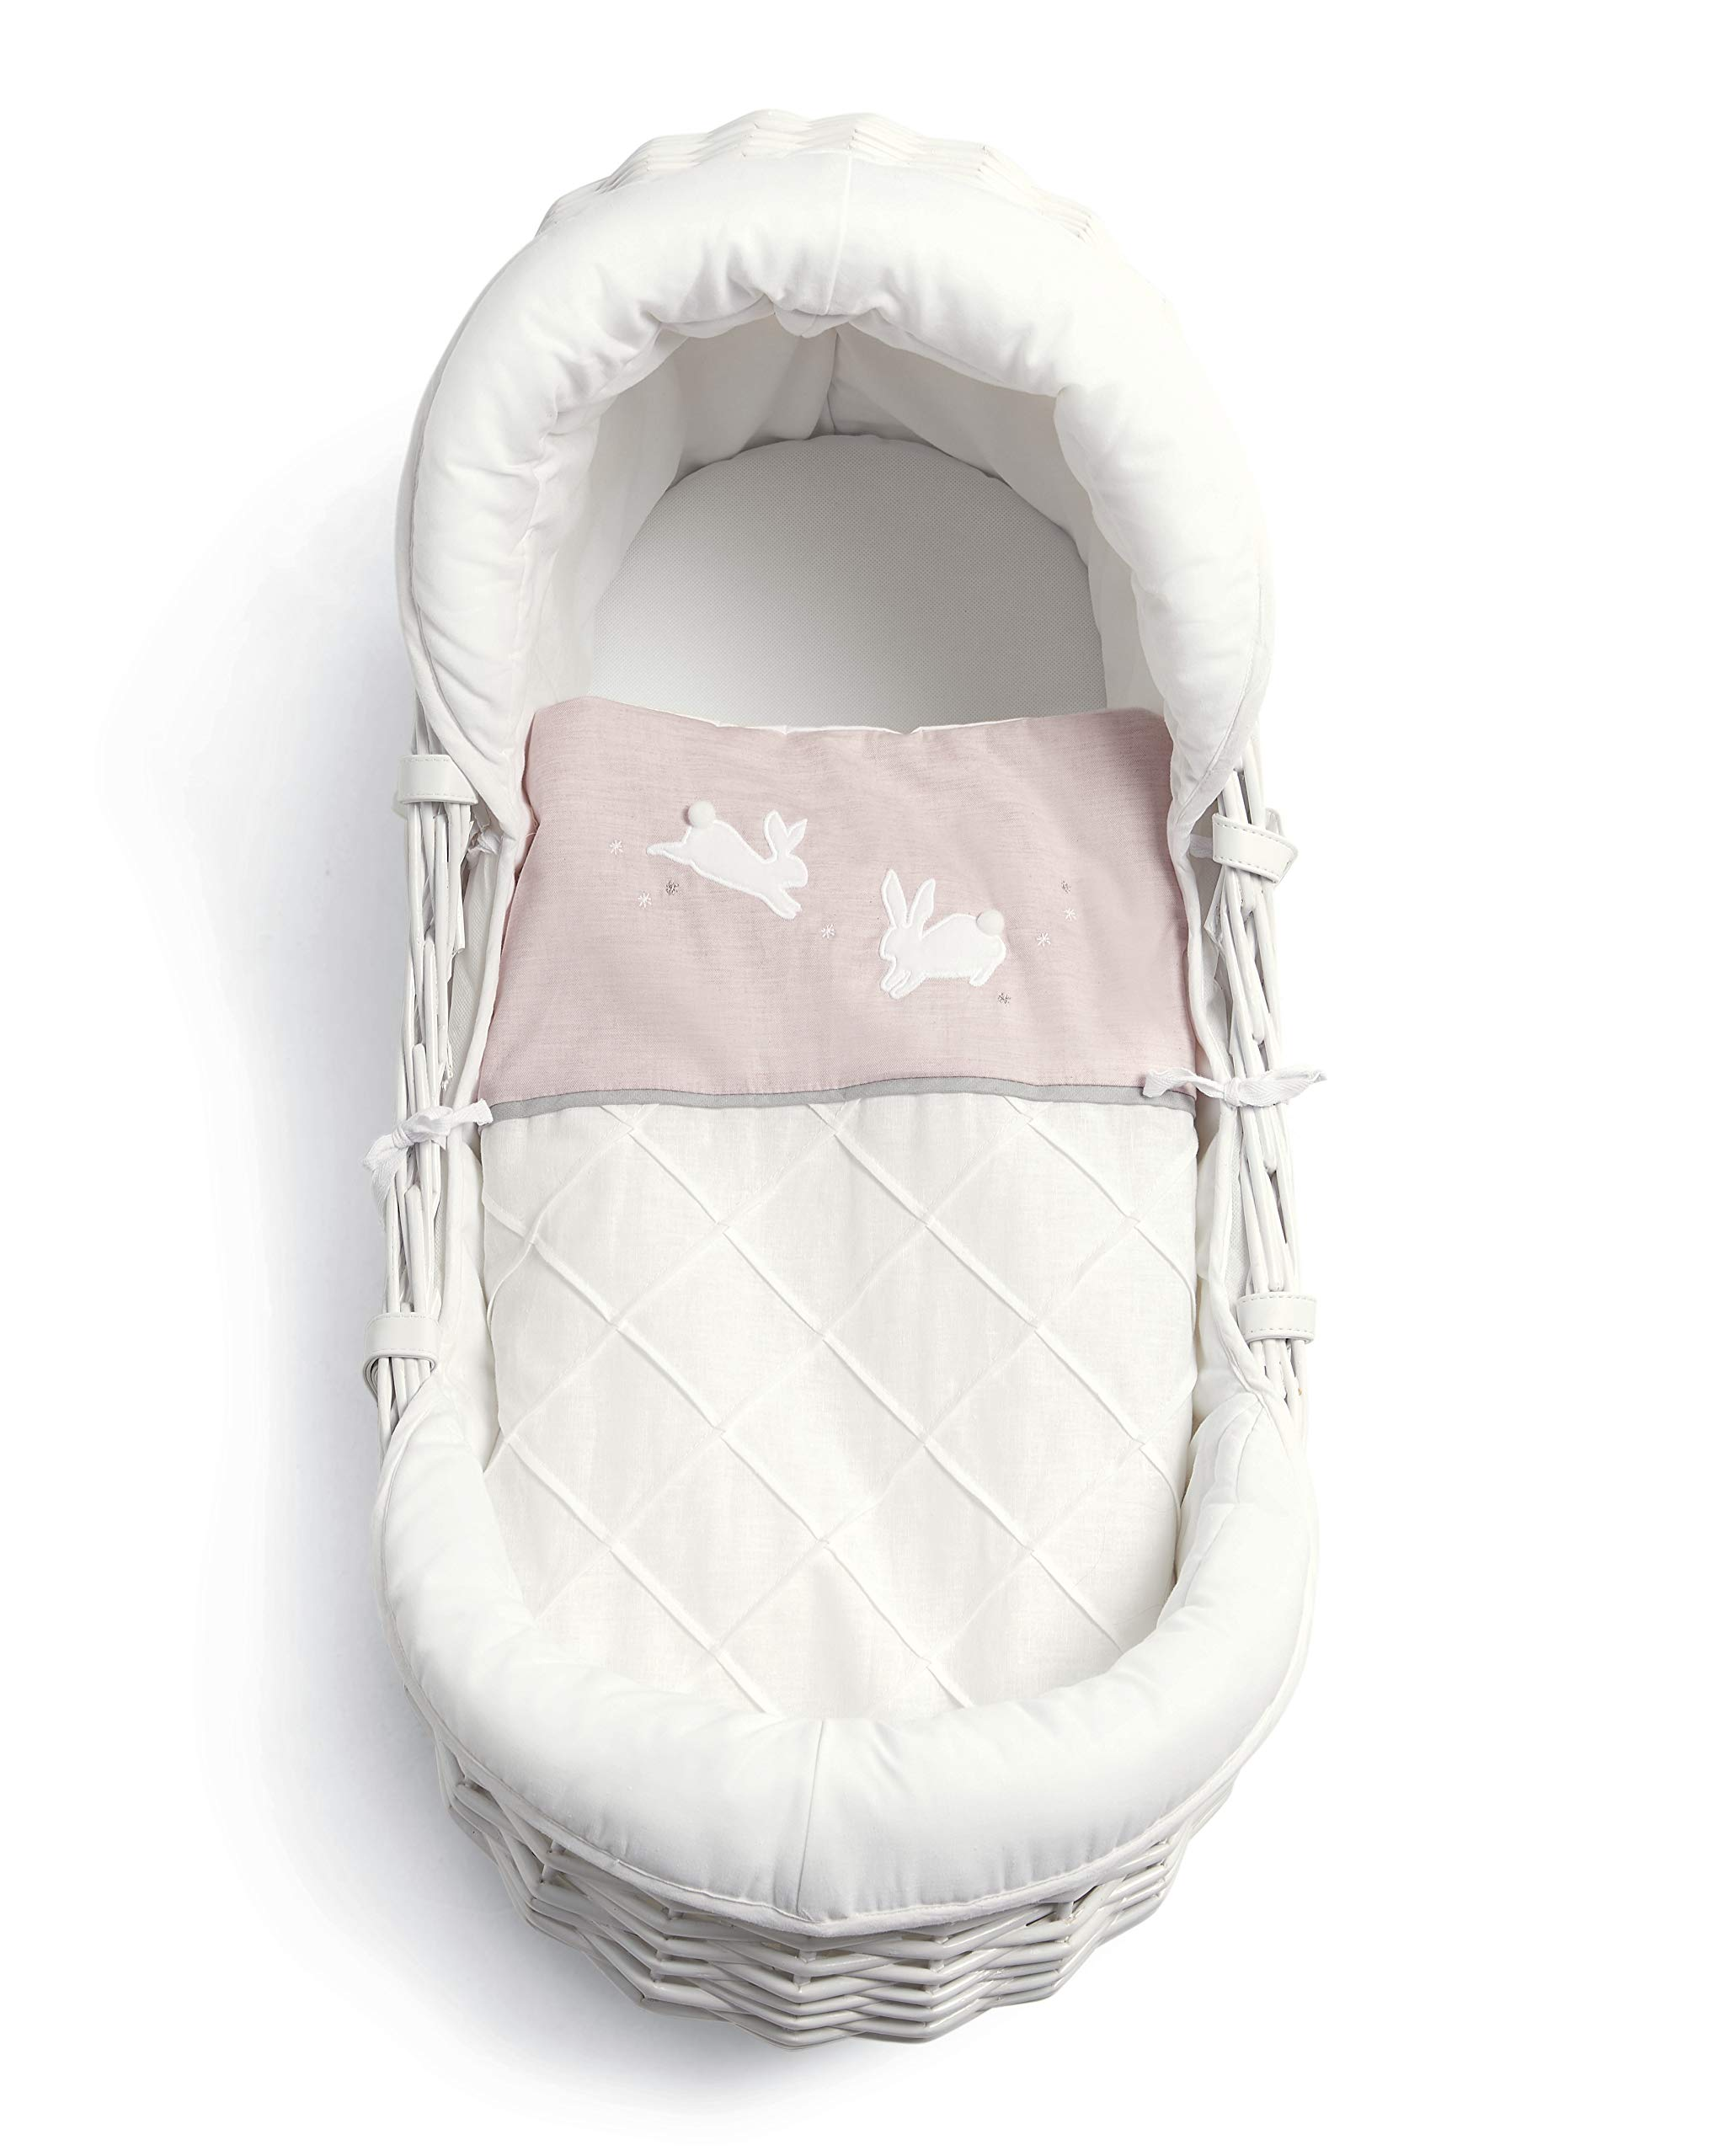 Mamas & Papas Moses Basket - Welcome to the World Pink - Welcome to the World Girls Mamas & Papas Made with 50: 50 cotton and linen mix fabric Luxury, supportive wicker basket Cover made with 100% cotton 1